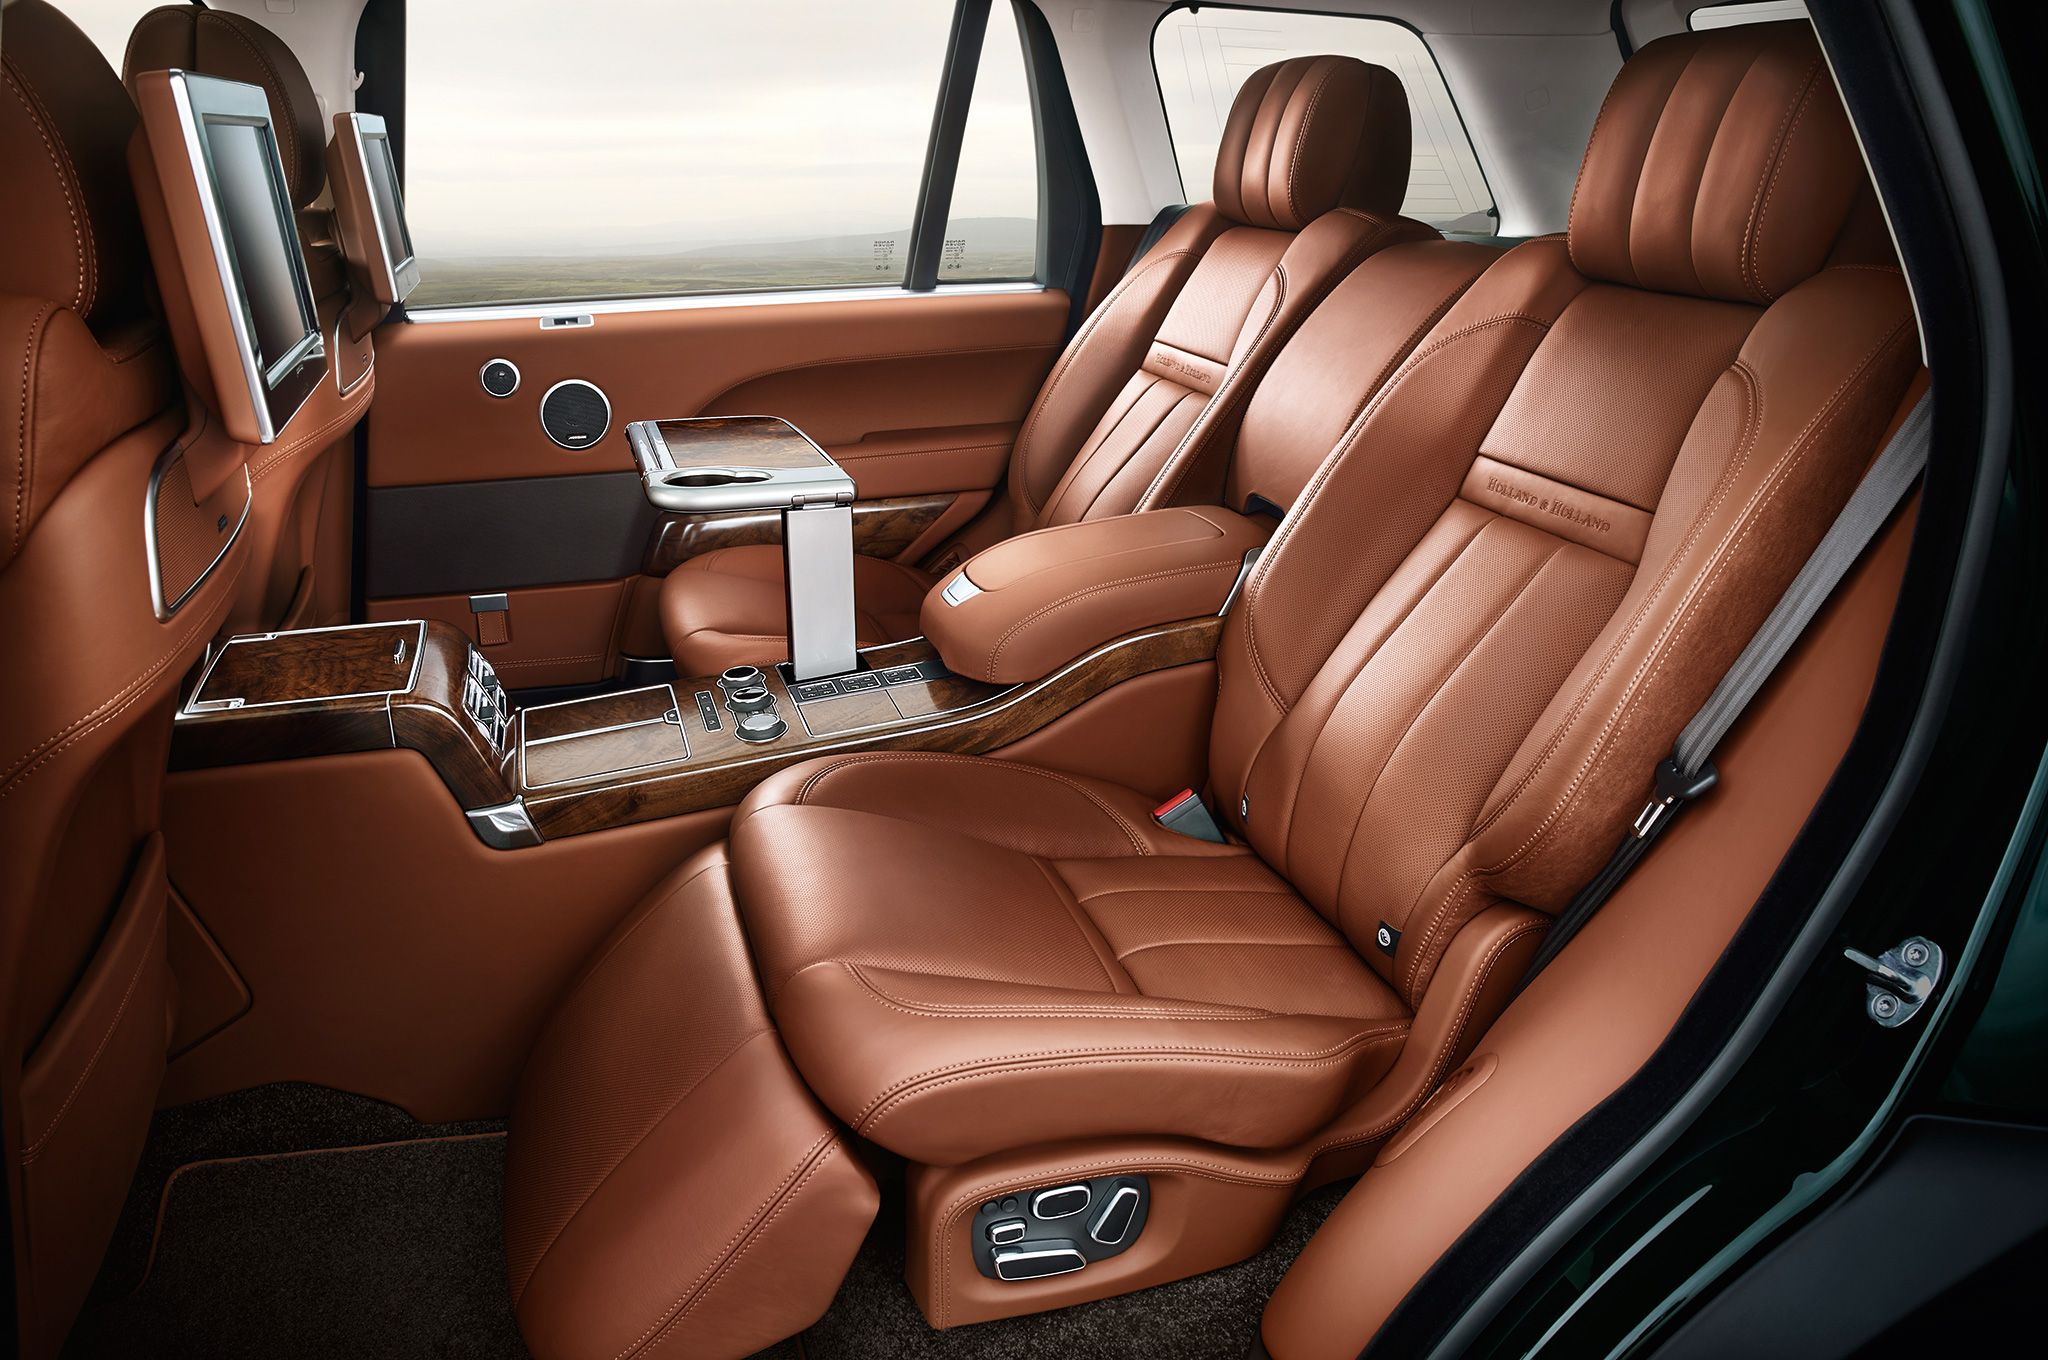 The interior of the land rover range rover holland holland is about as rich as